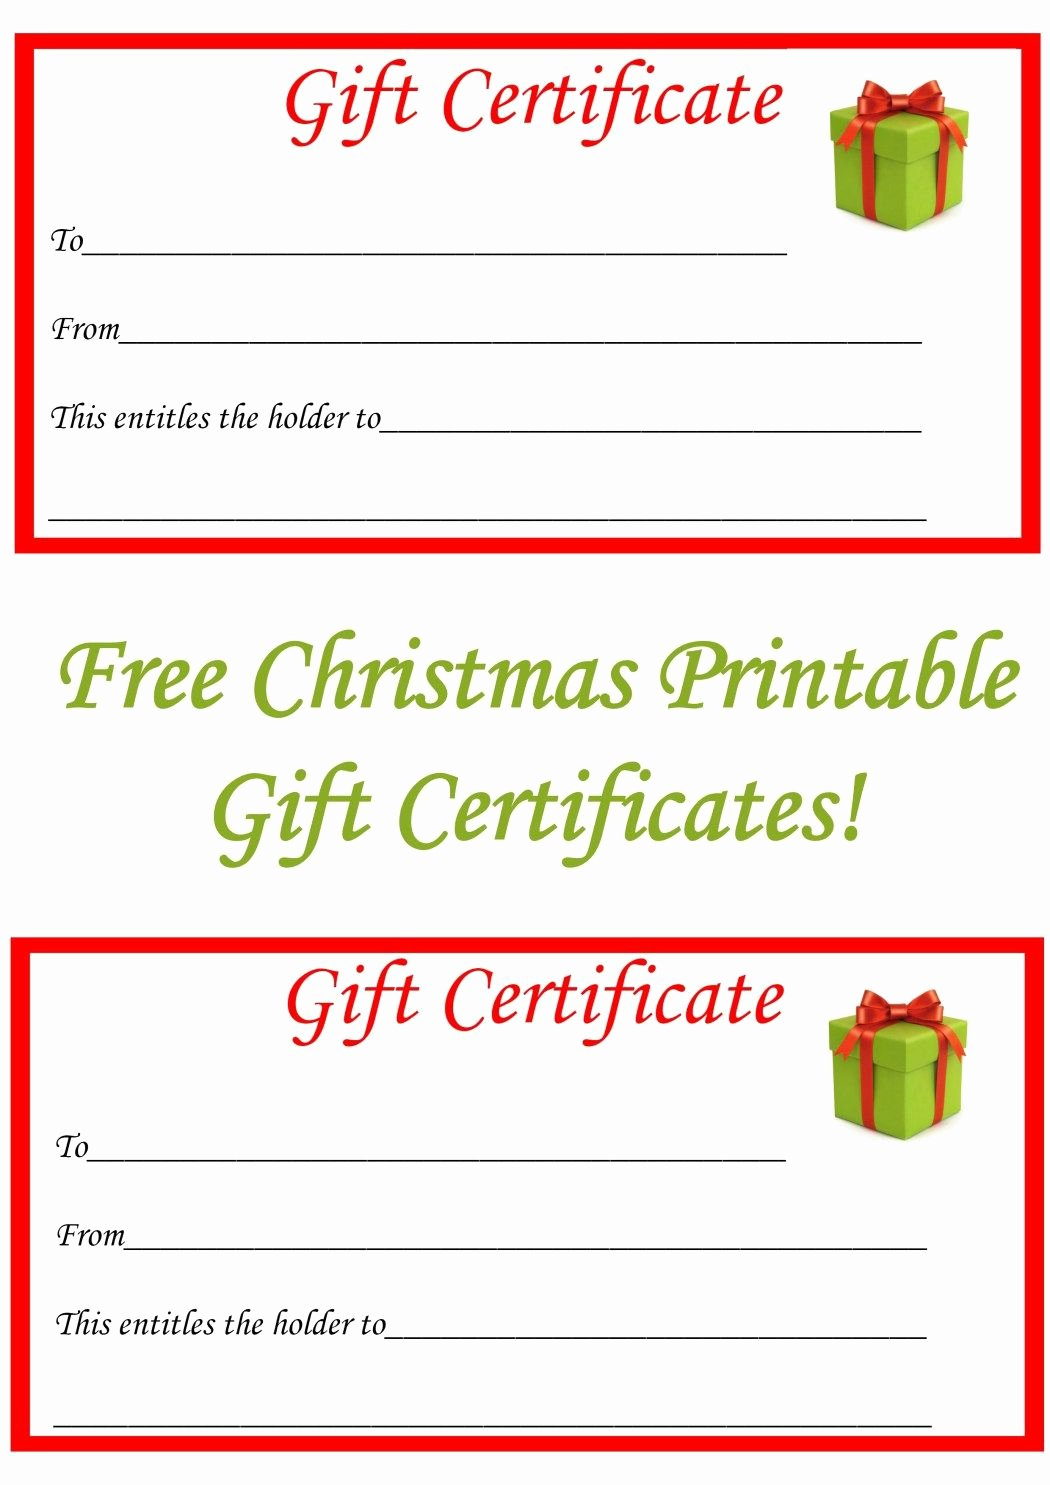 Scentsy Gift Certificate Template Luxury Best 25 Printable T Certificates Ideas On Pinterest